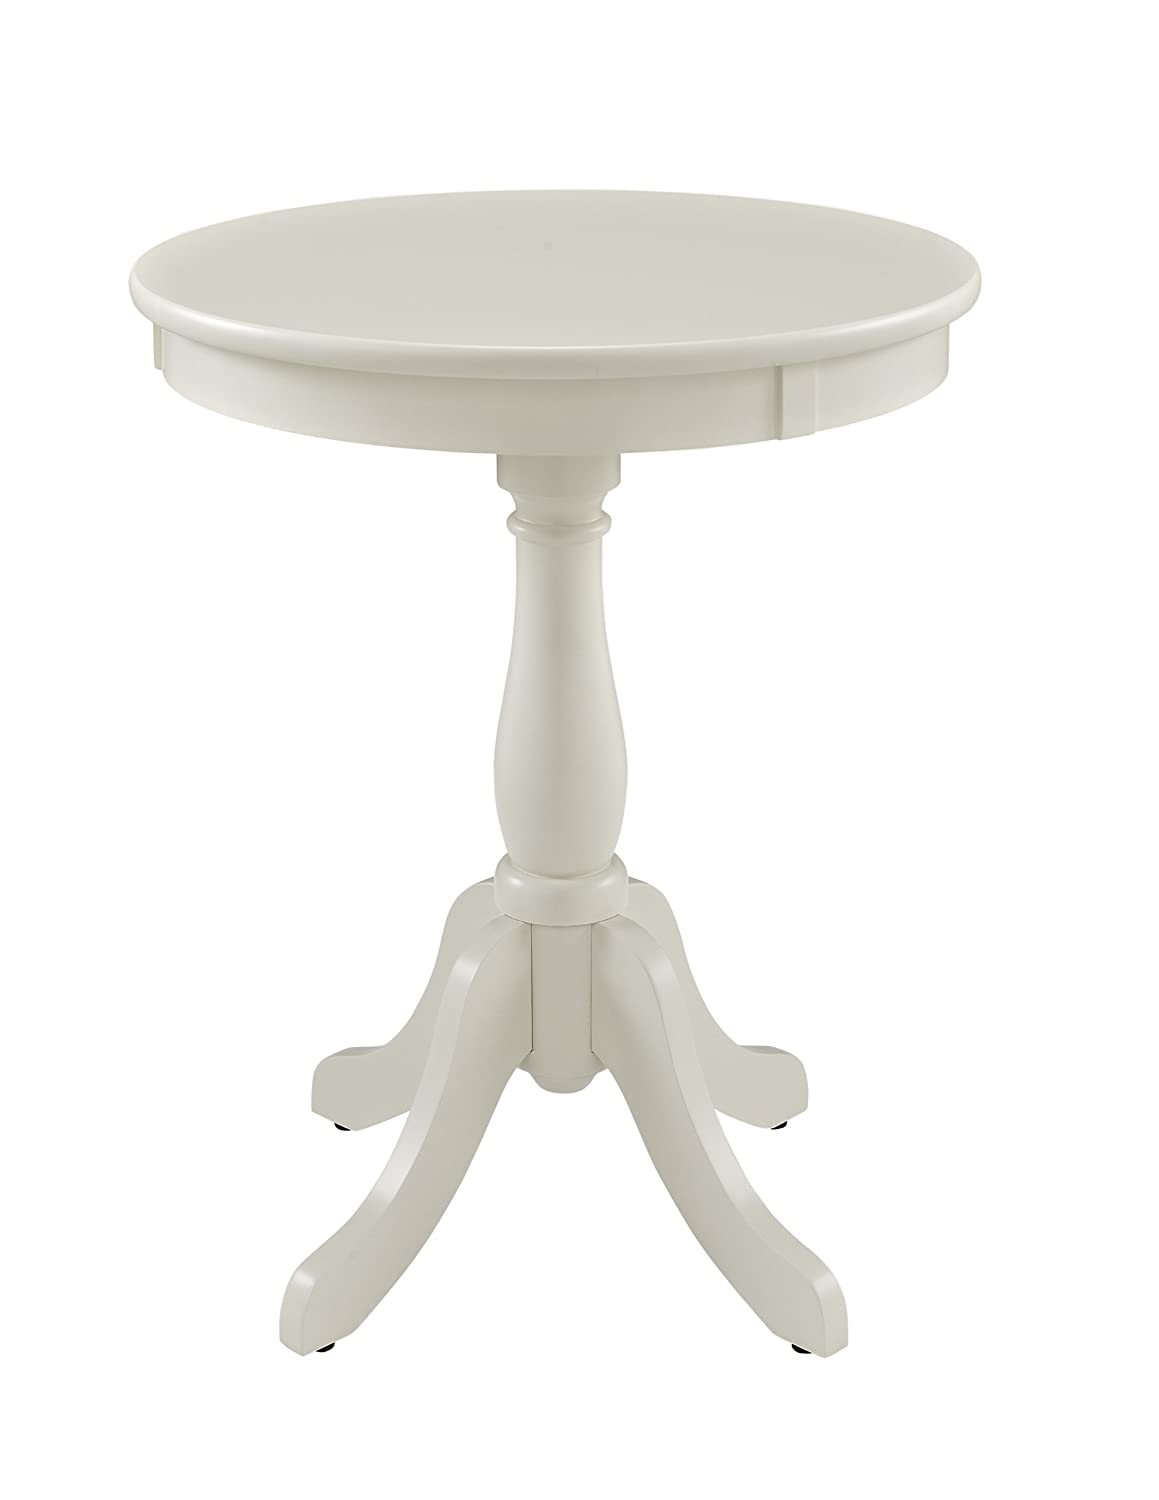 White 18 L x 18 W x 22 H Powell's Furniture 929-711 Powell Round Accent, White Table,